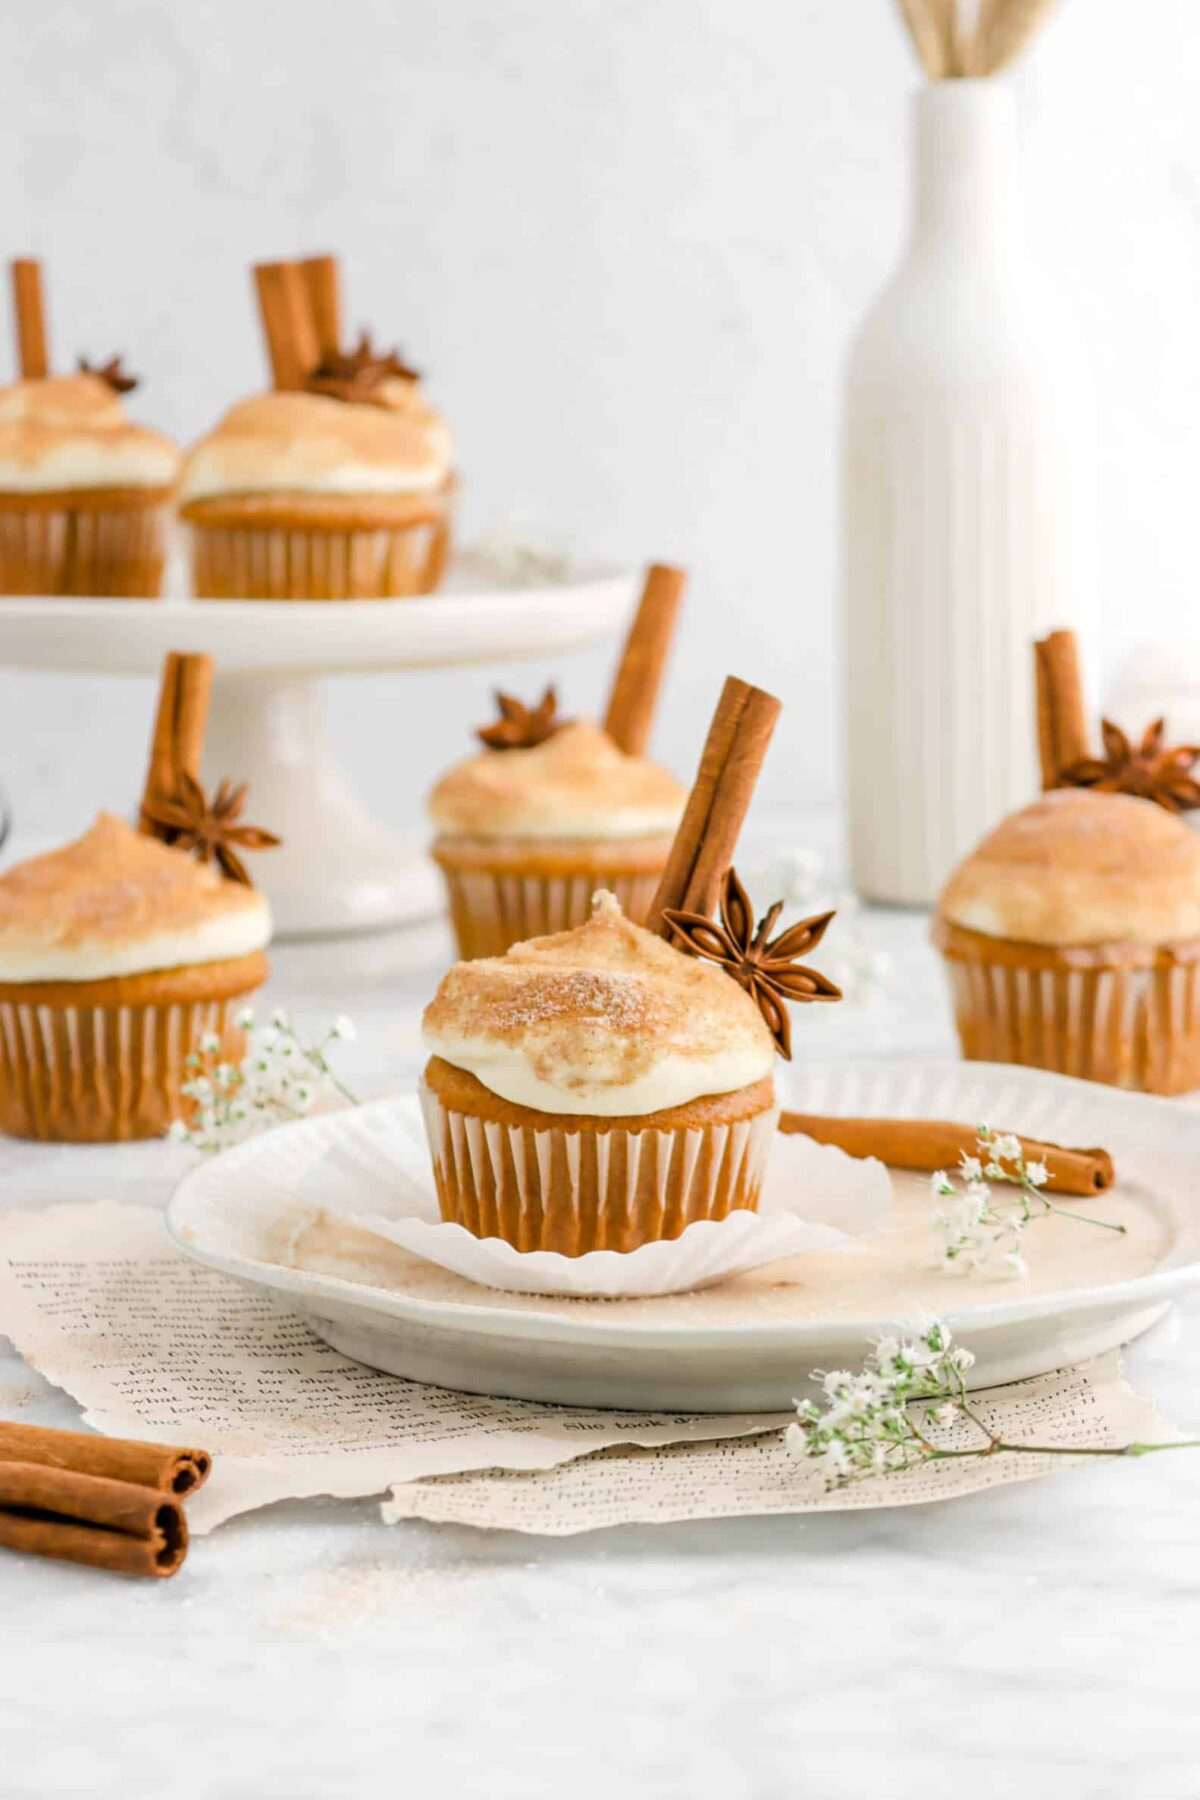 pumpkin cupcakes with spices and flowers